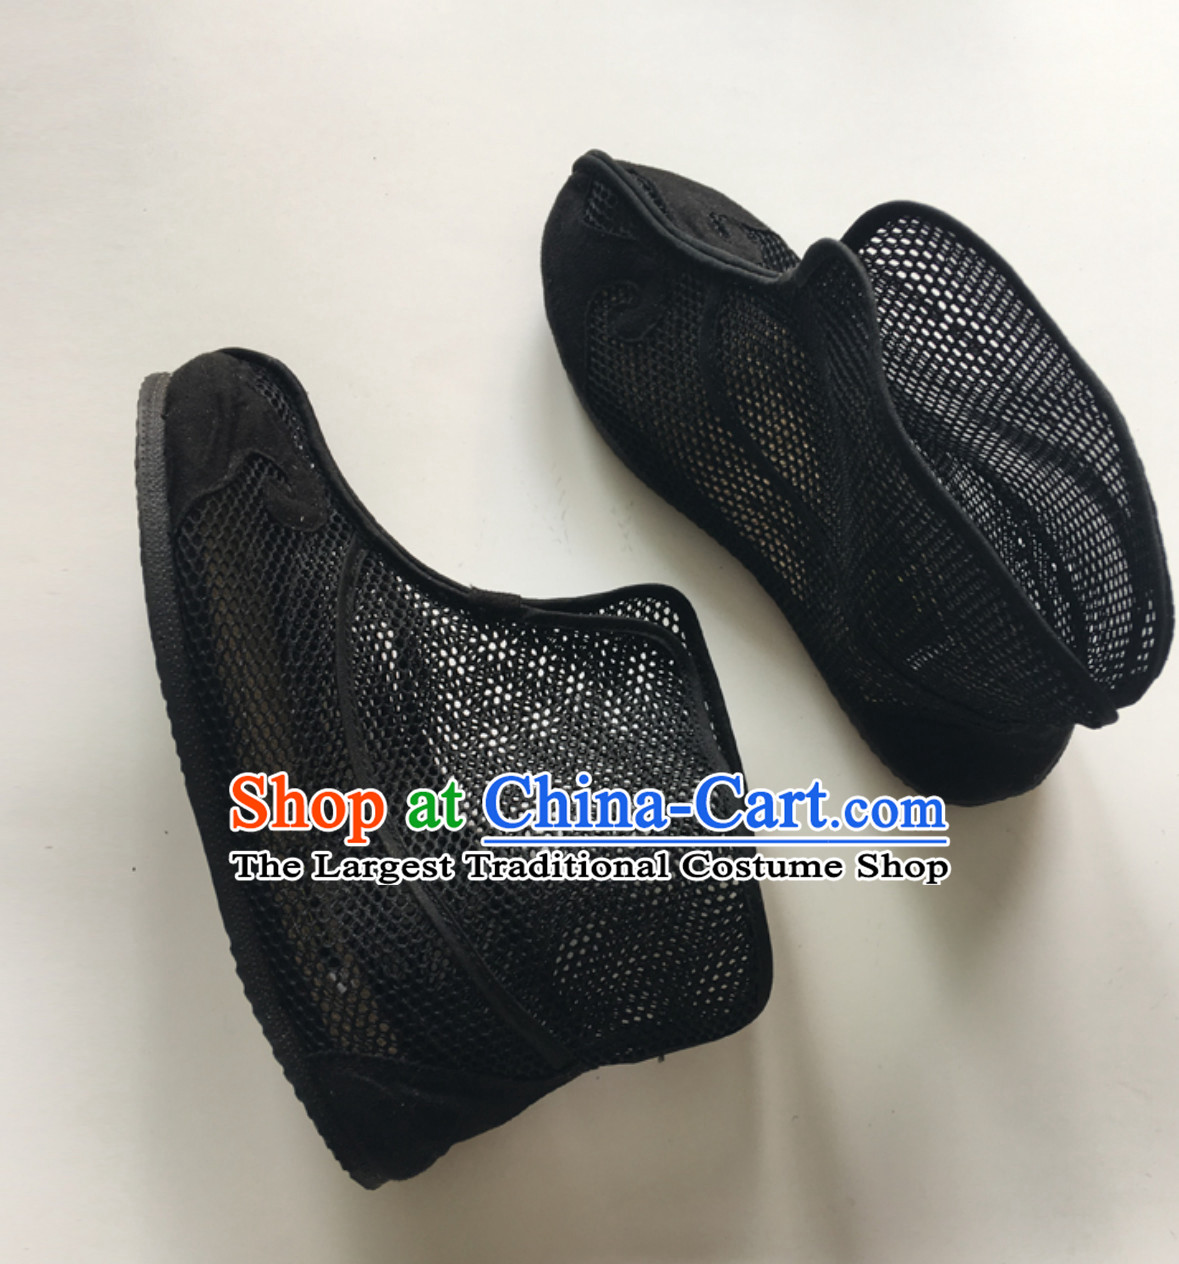 Ancient Chinese Style Mesh Black Boots for Men